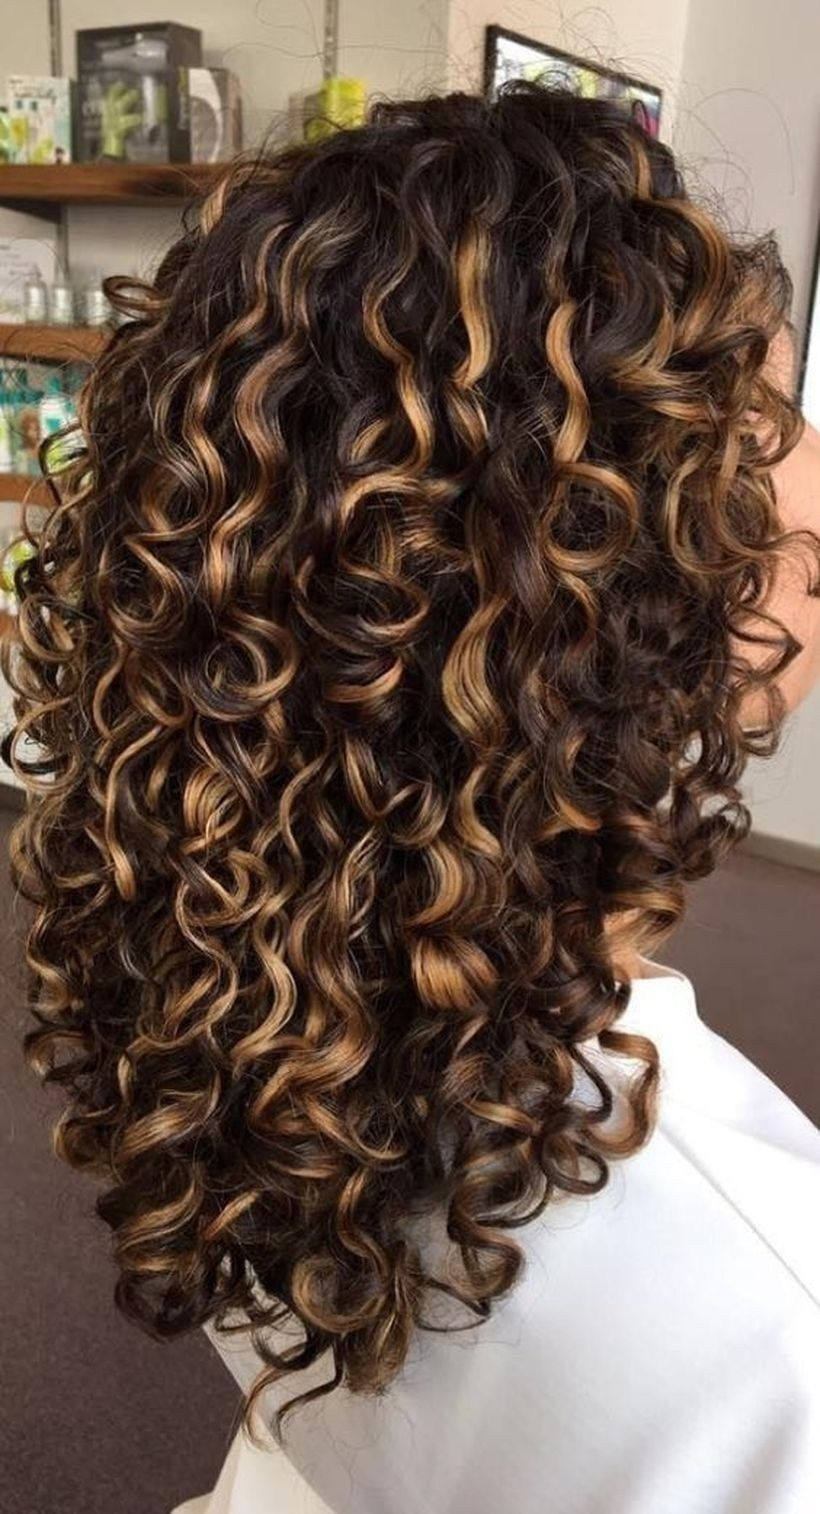 Trendy Curly Hairstyles For Women 37 Curly Hair Styles Naturally Curly Hair Styles Long Hair Styles